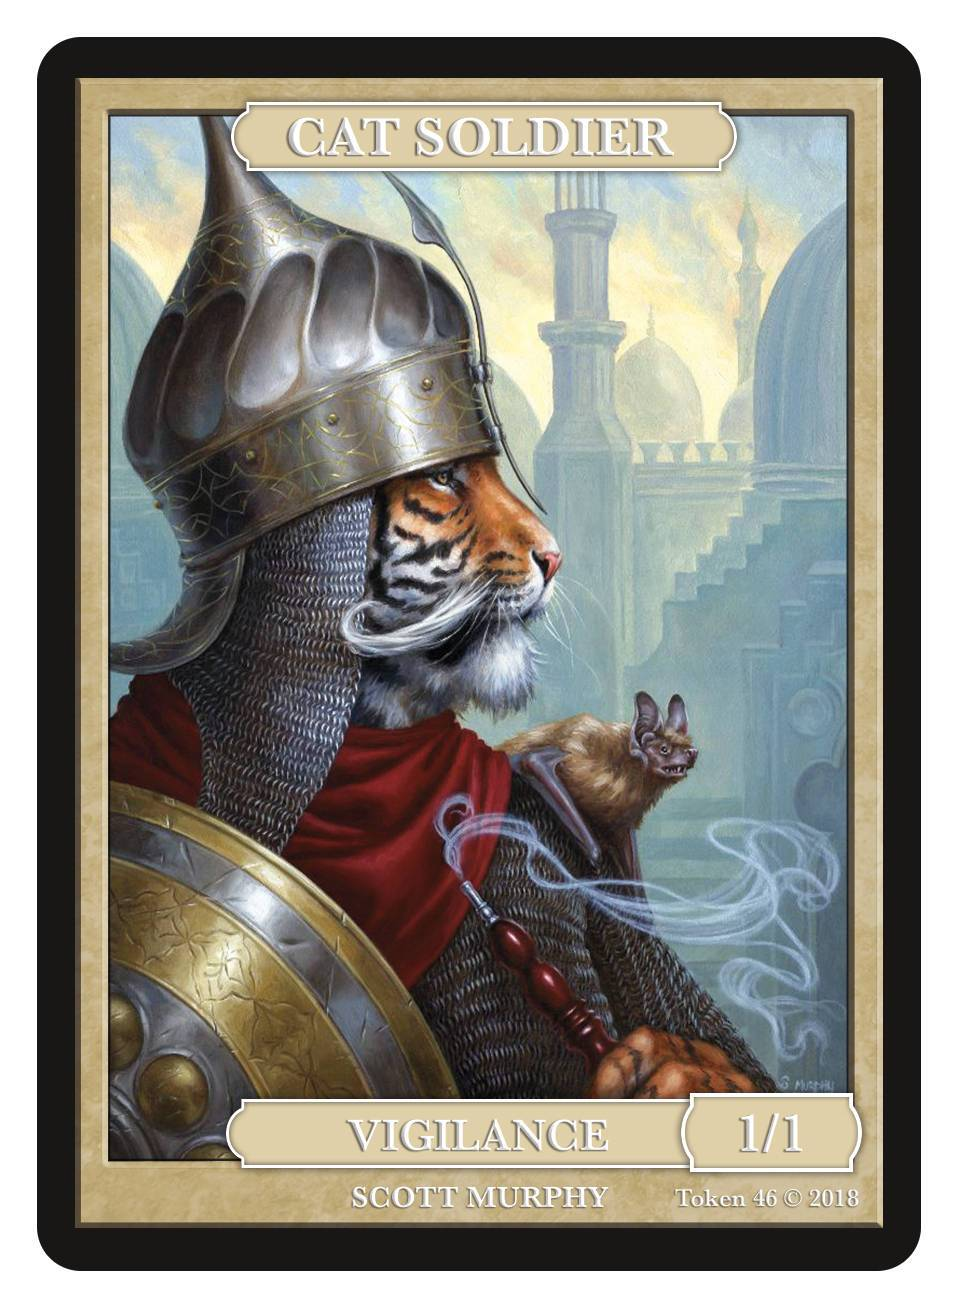 Cat Soldier Token (1/1 - Vigilance) by Scott Murphy - Token - Original Magic Art - Accessories for Magic the Gathering and other card games